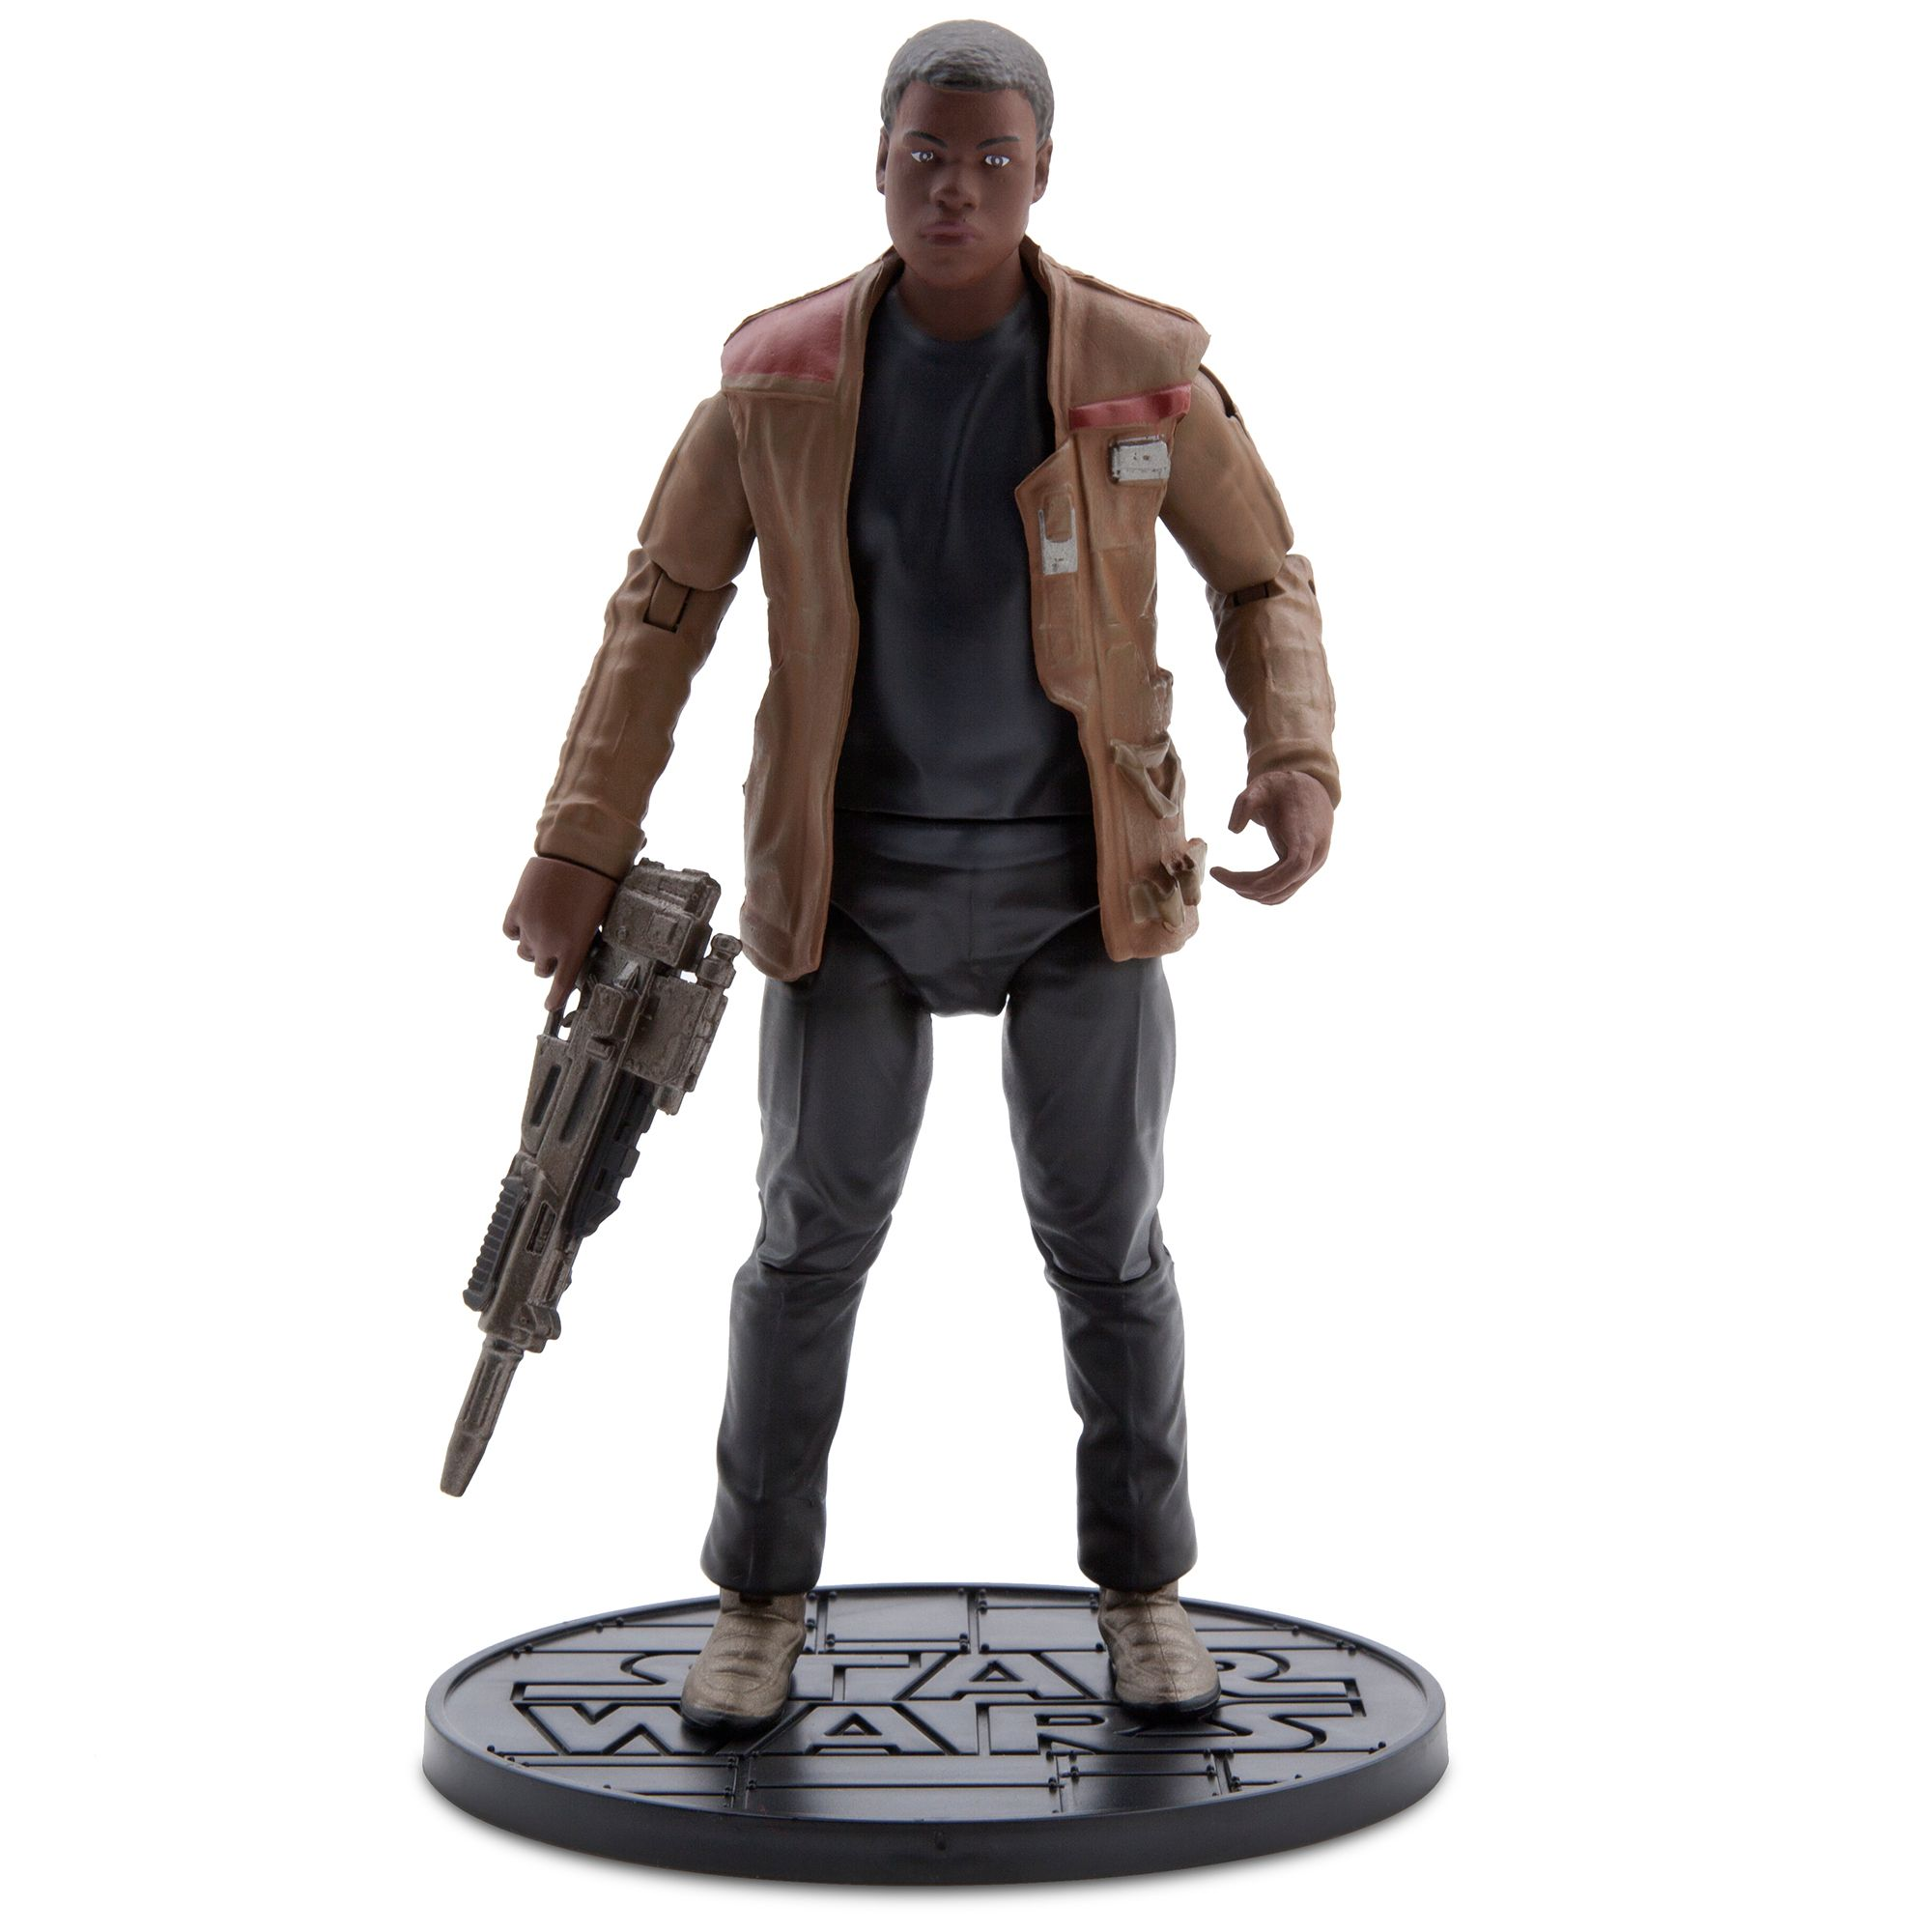 Star Wars Toys : Star wars the force awakens toy images collider